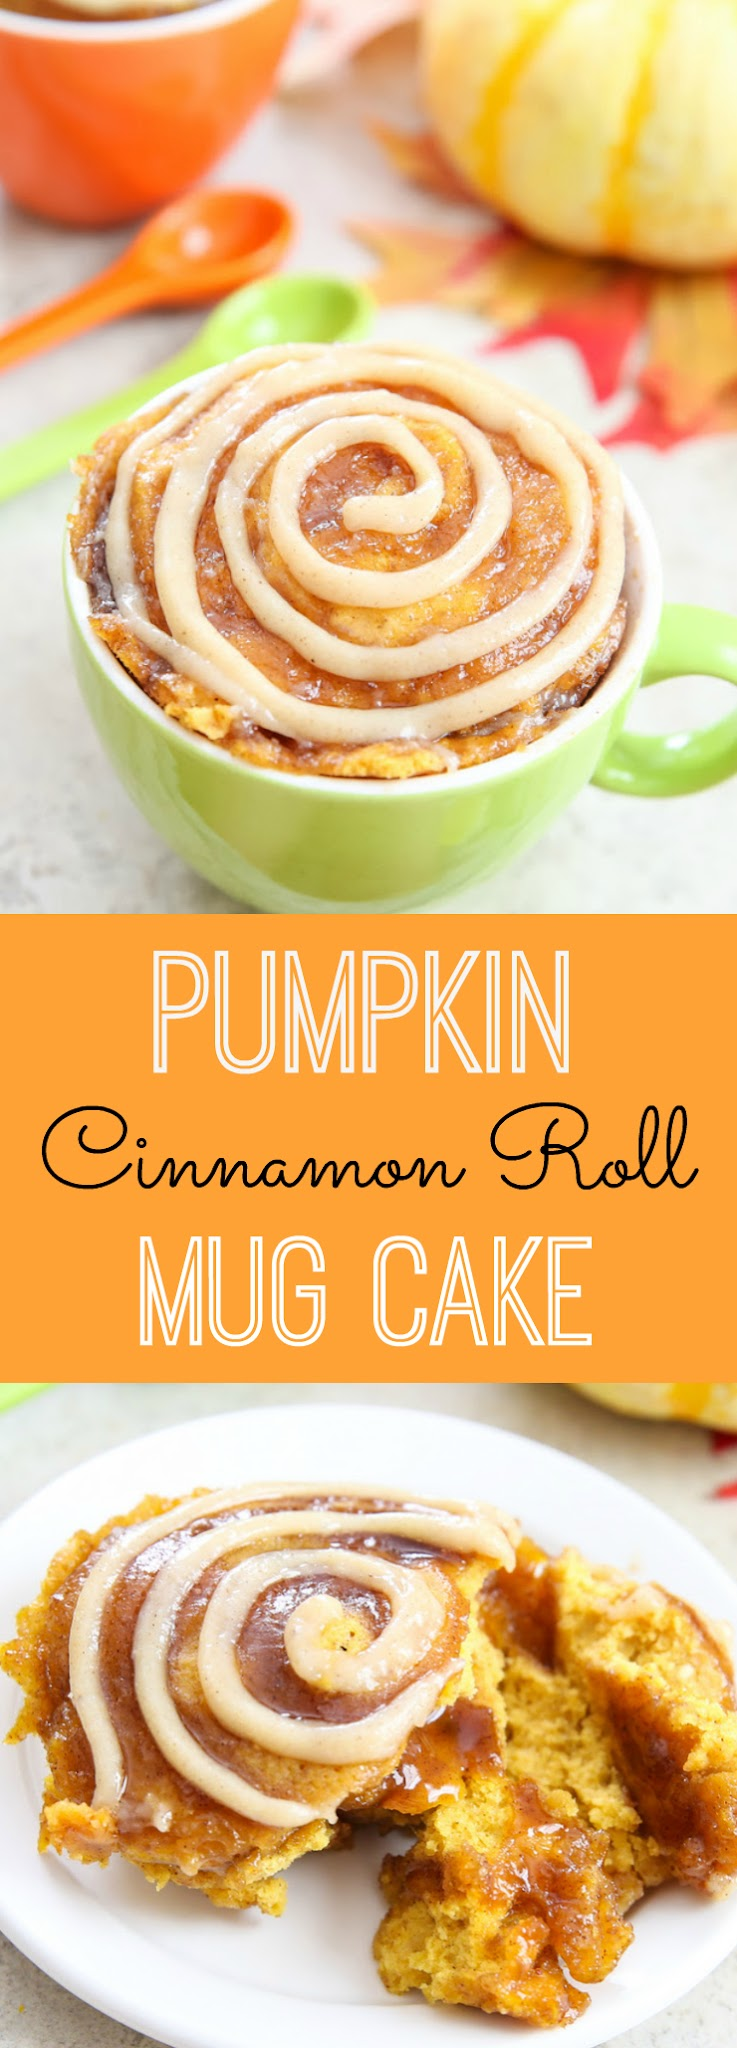 photo collage of Pumpkin Cinnamon Roll Mug Cake